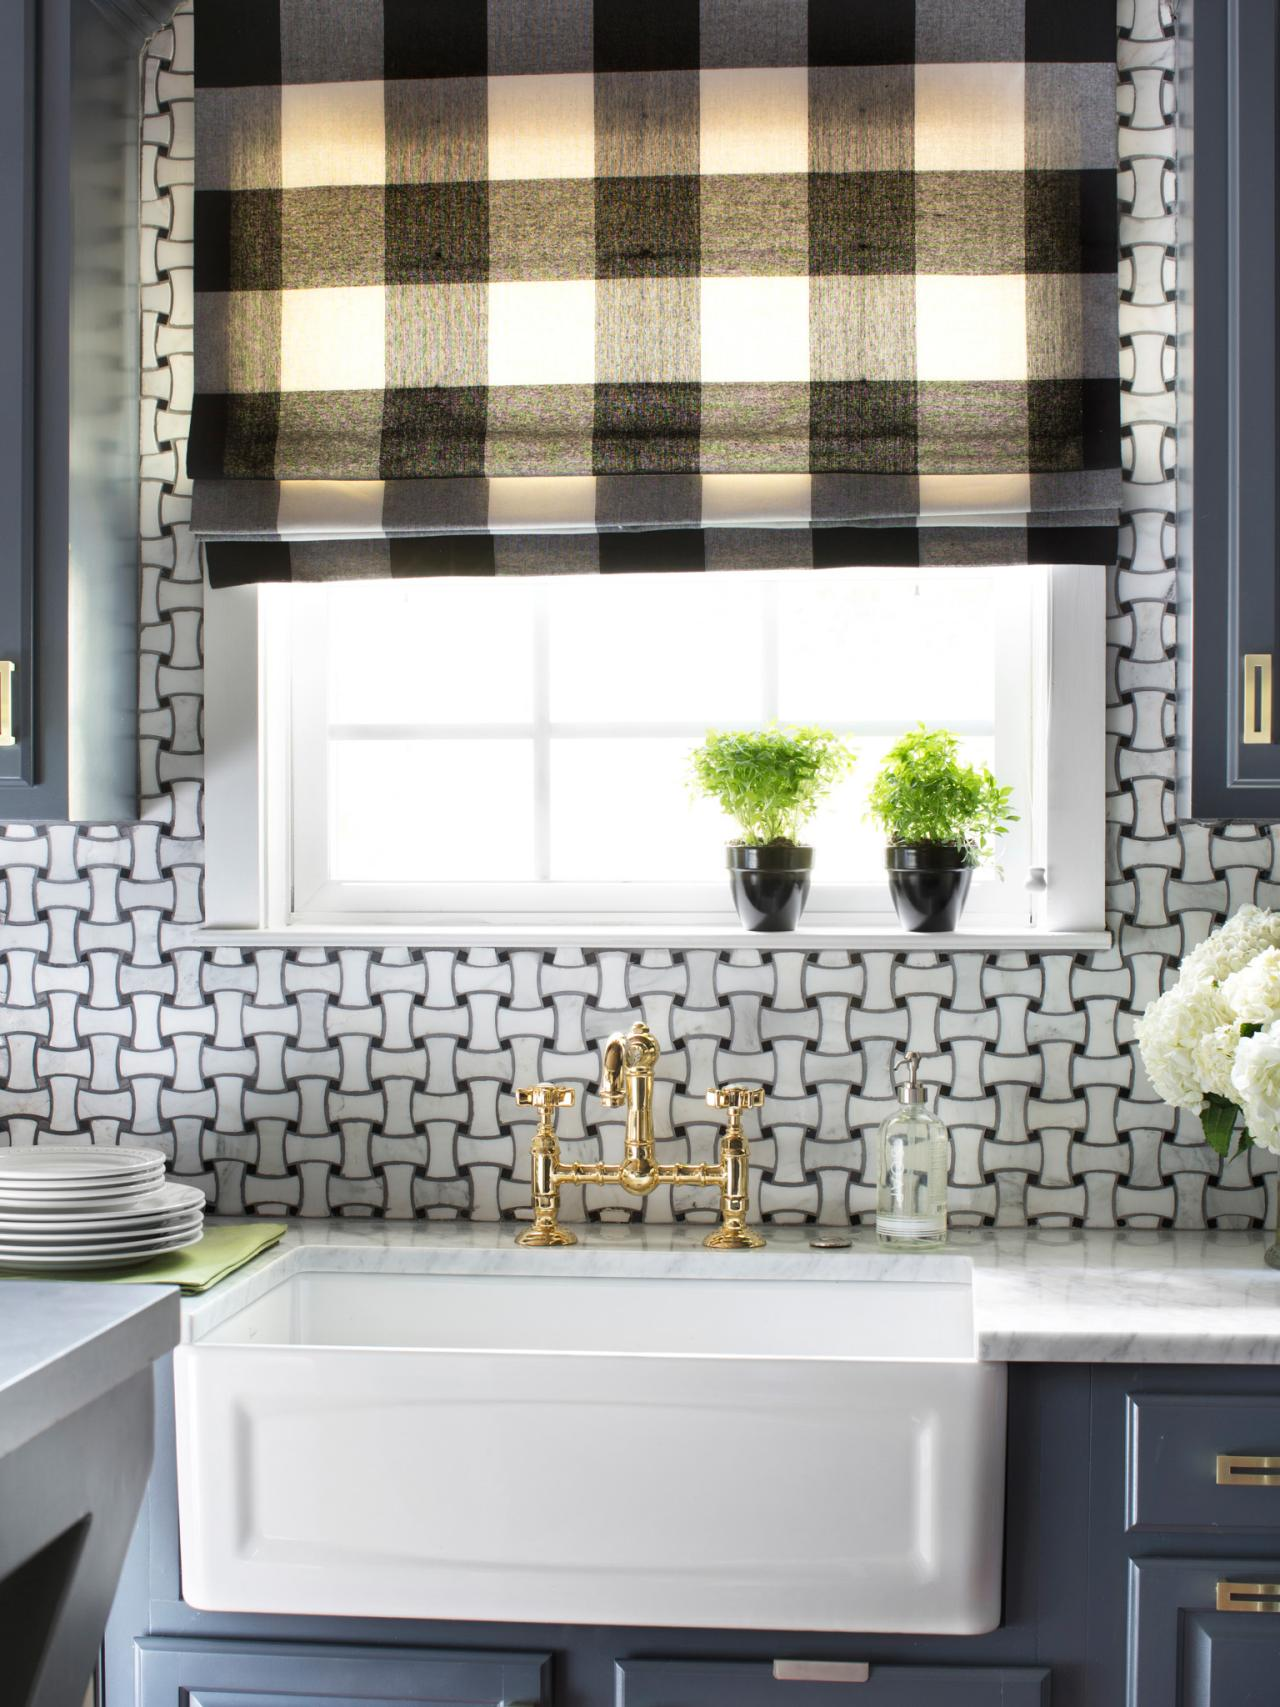 bpf_holiday-house_interior_upgrading_contractor_kitchen_apron_sink_v-jpg-rend-hgtvcom-1280-1707